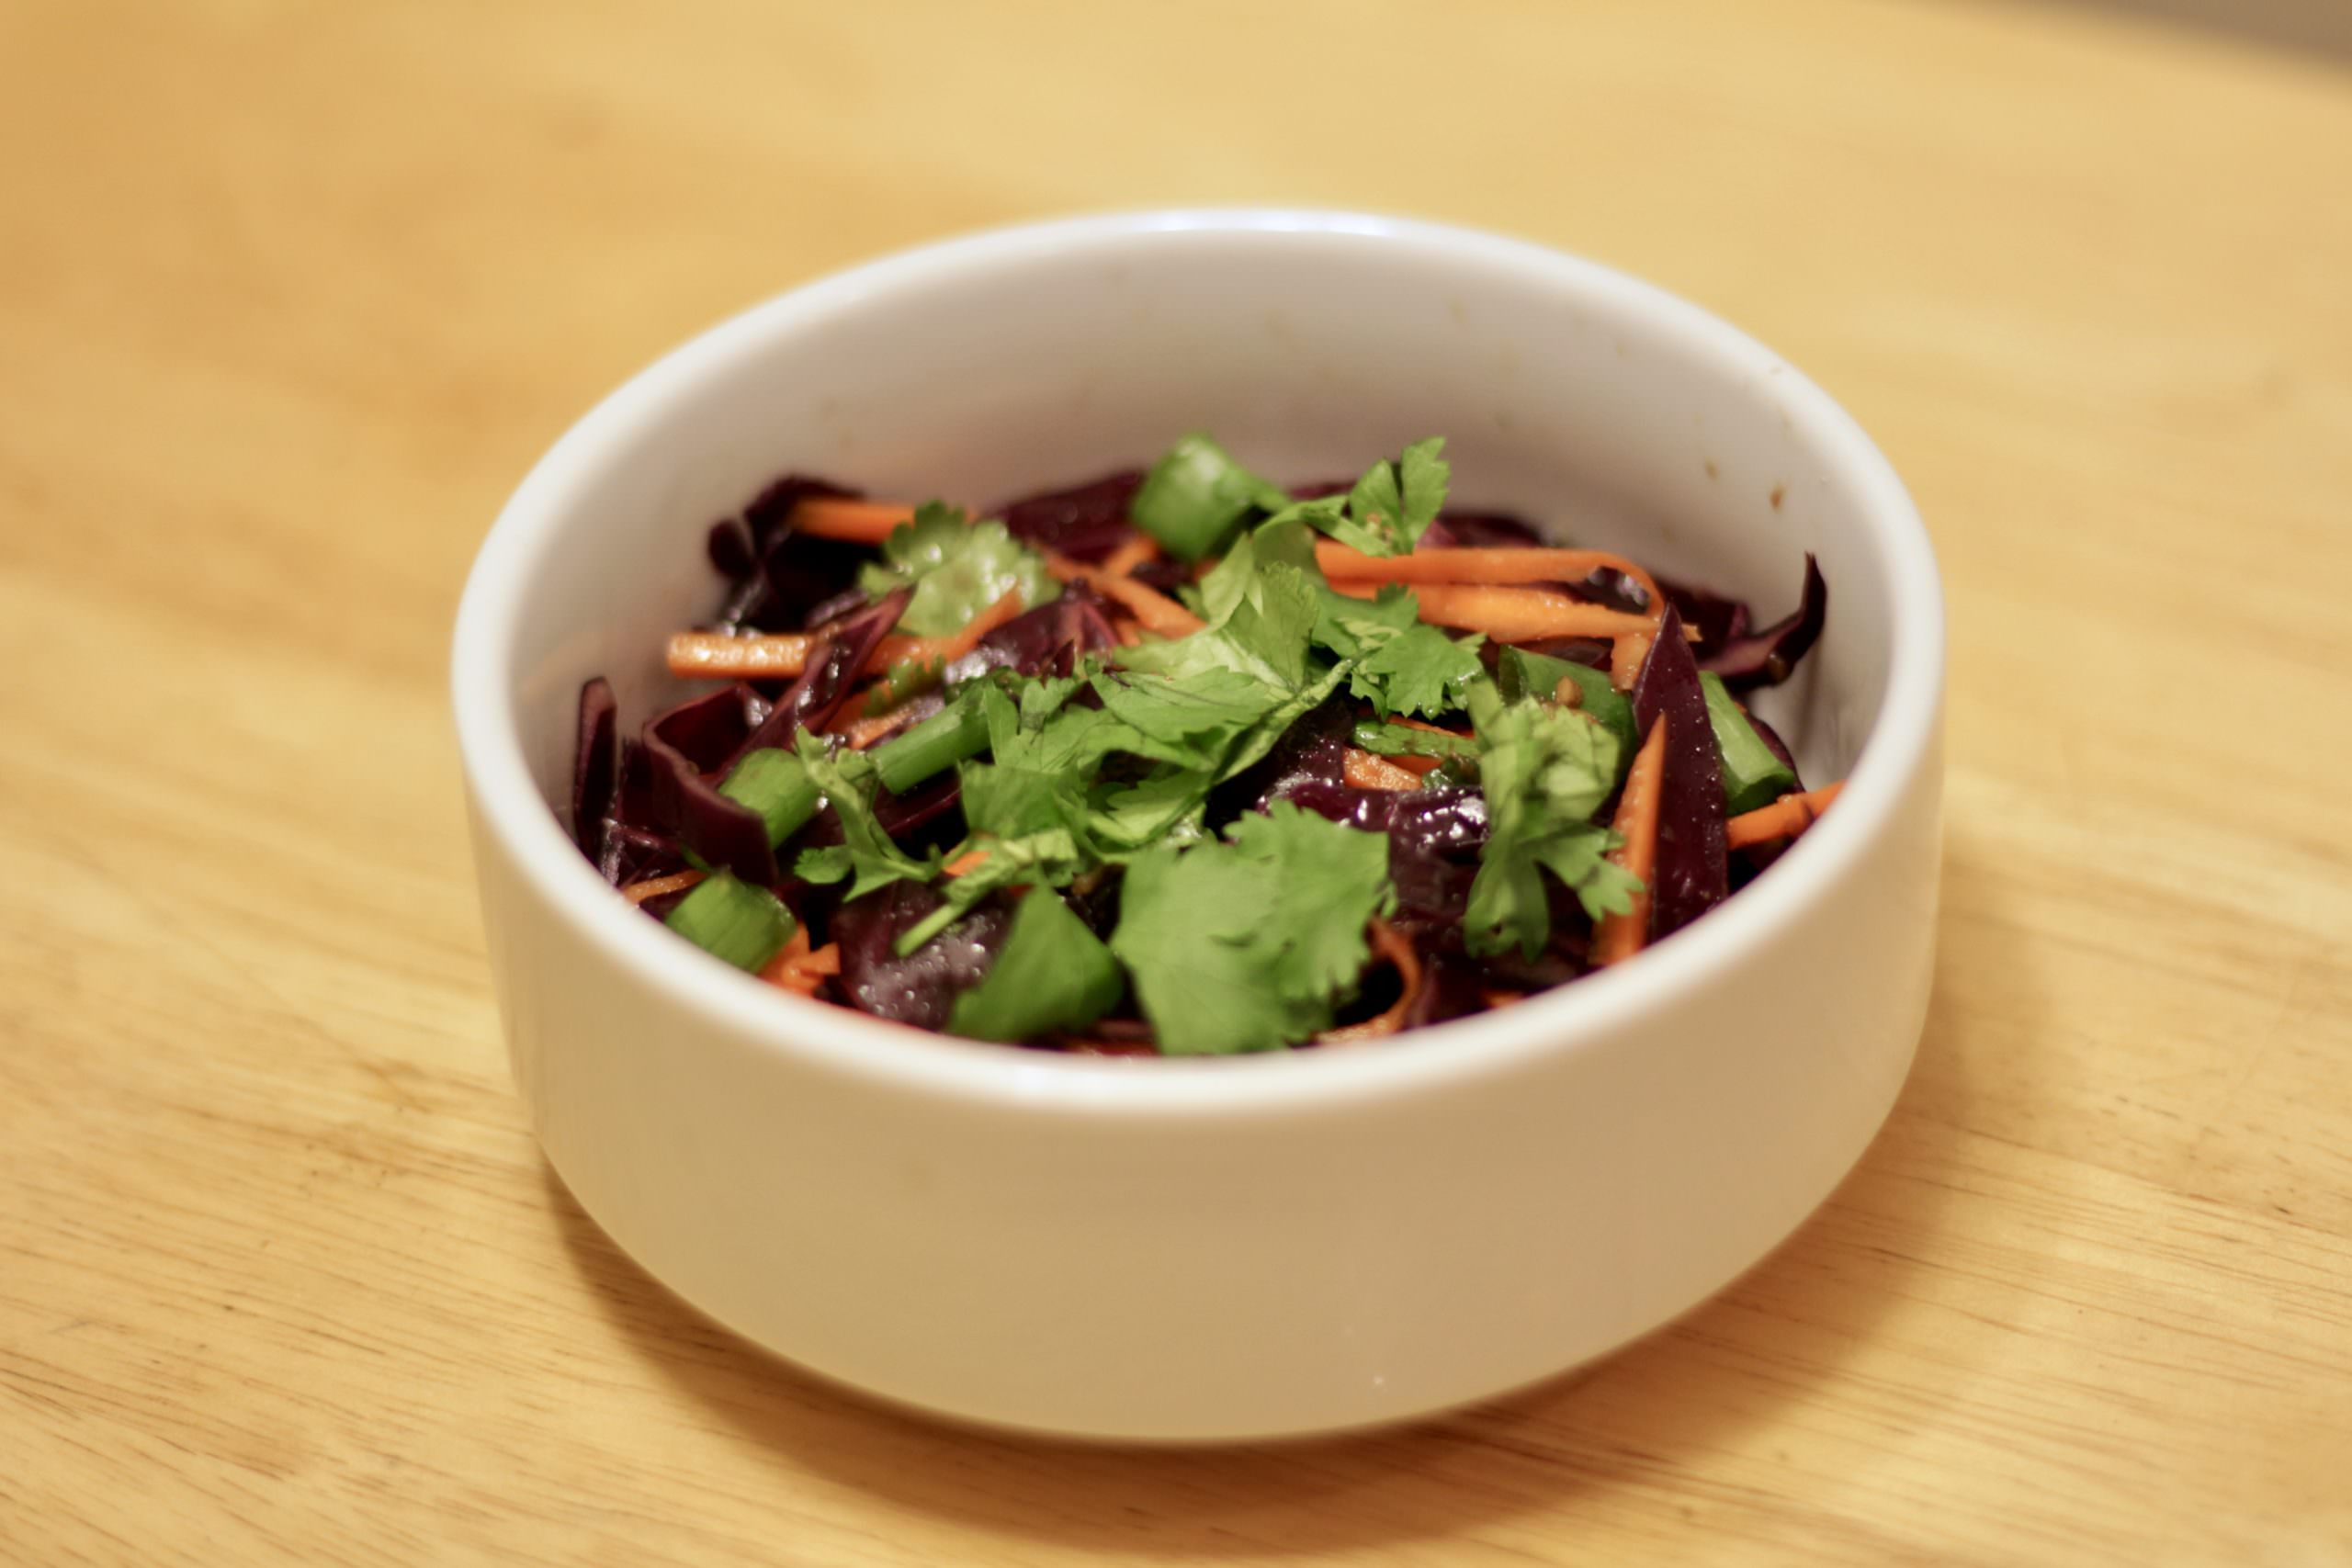 Easy Asian Slaw with Red Cabbage and Carrot